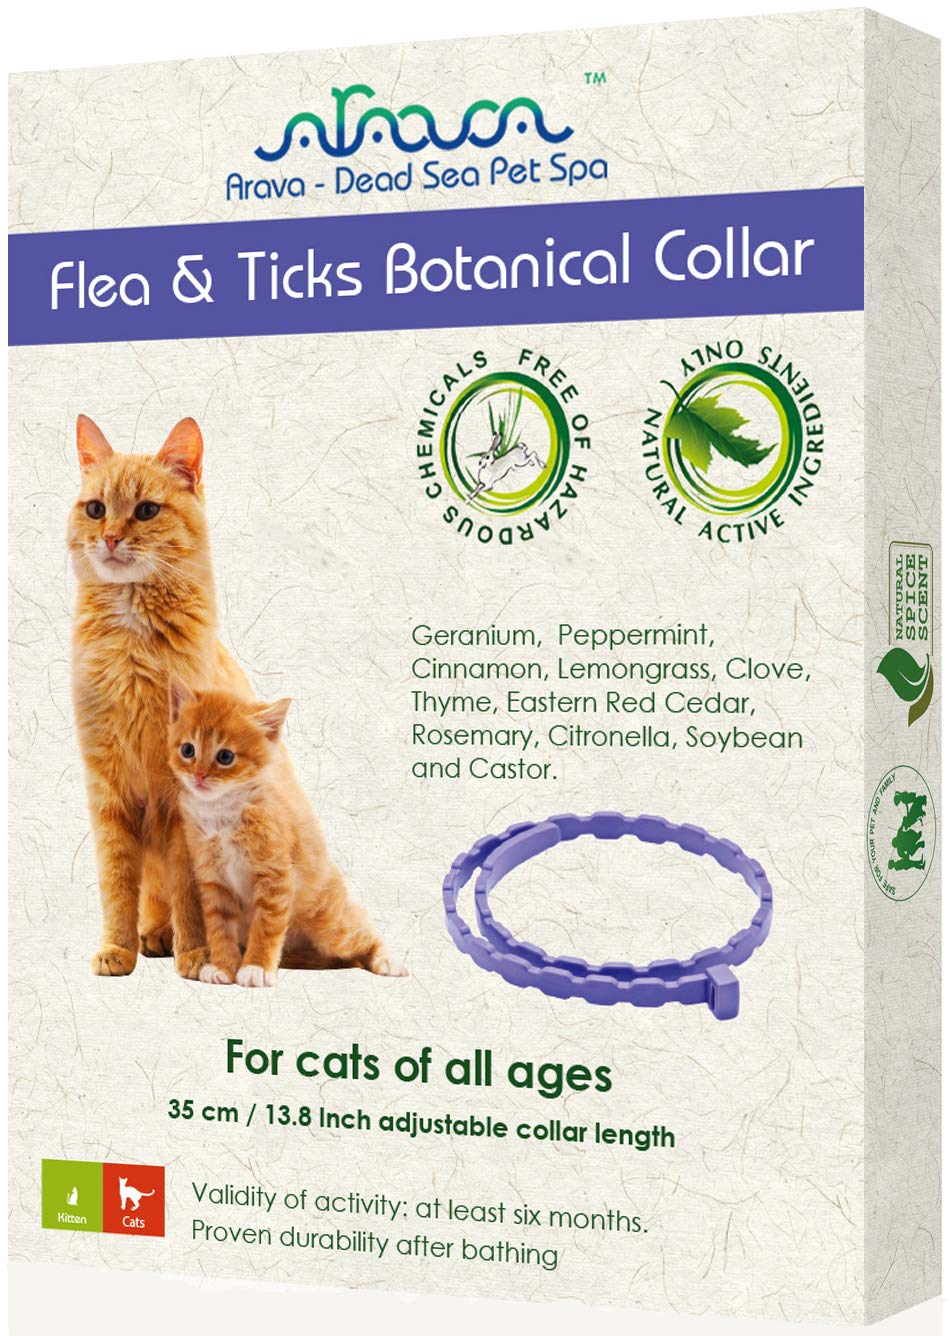 Arava Flea & Tick Prevention Collar - for Cats & Kittens - Length-14'' - 11 Natural Active Ingredients - Safe for Babies & Pets - Safely Repels Pests - Enhanced Control & Defense - 6 Months Protection by Arava - Dead Sea Pet Spa